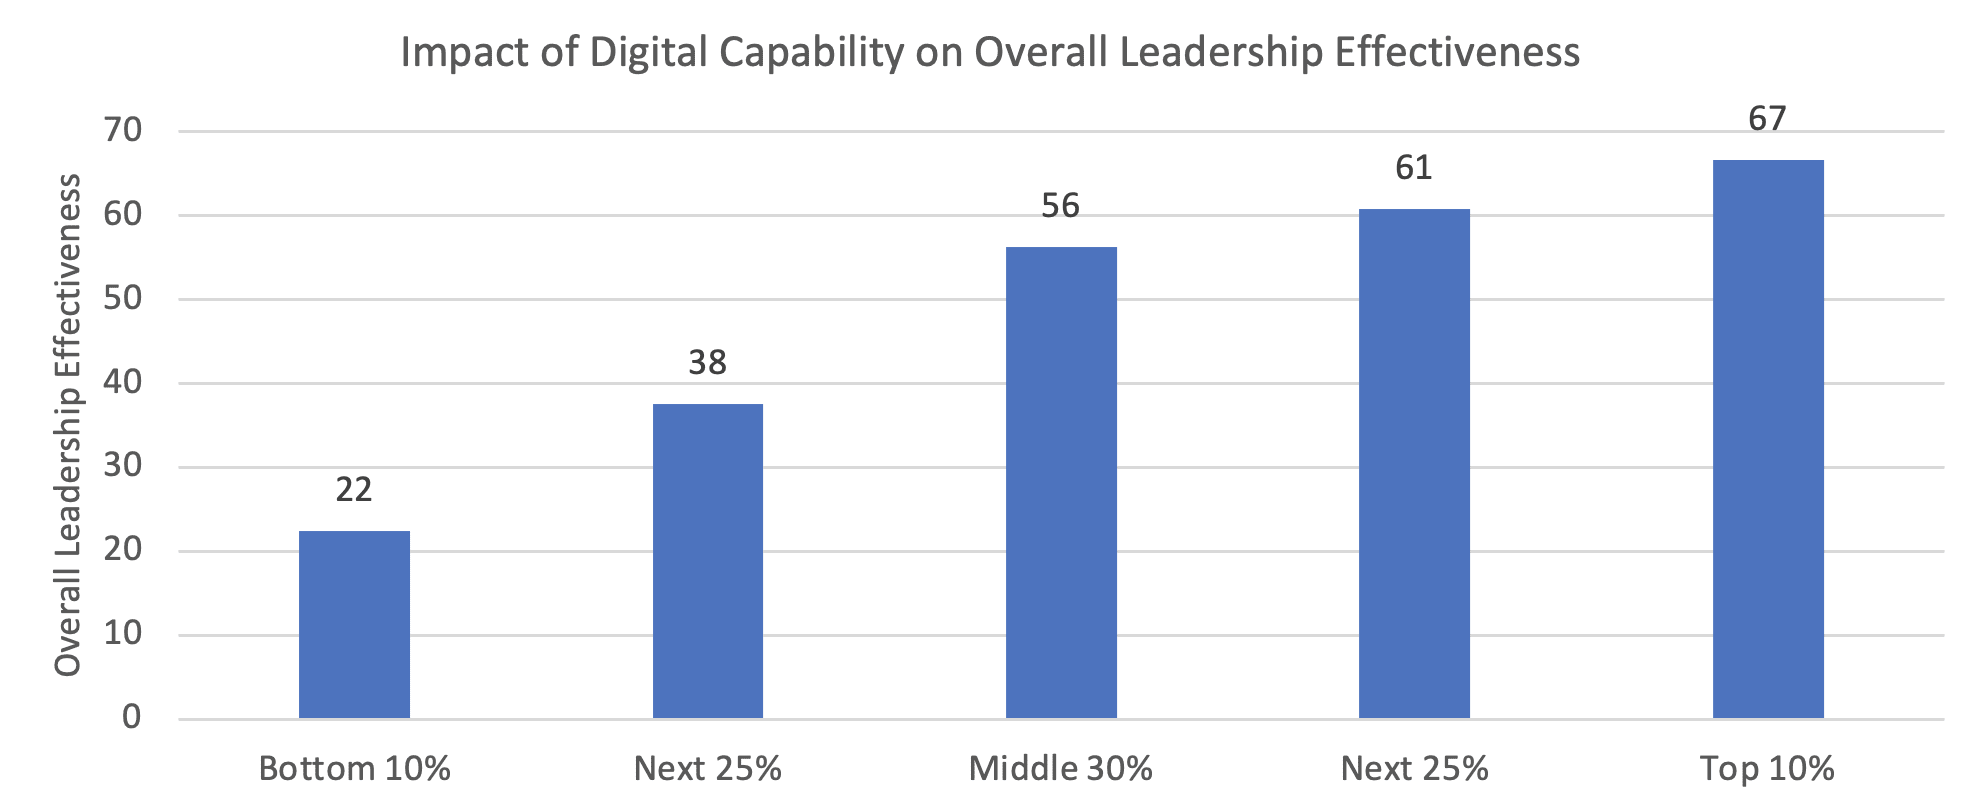 Digital Expertise and Leadership Effectiveness